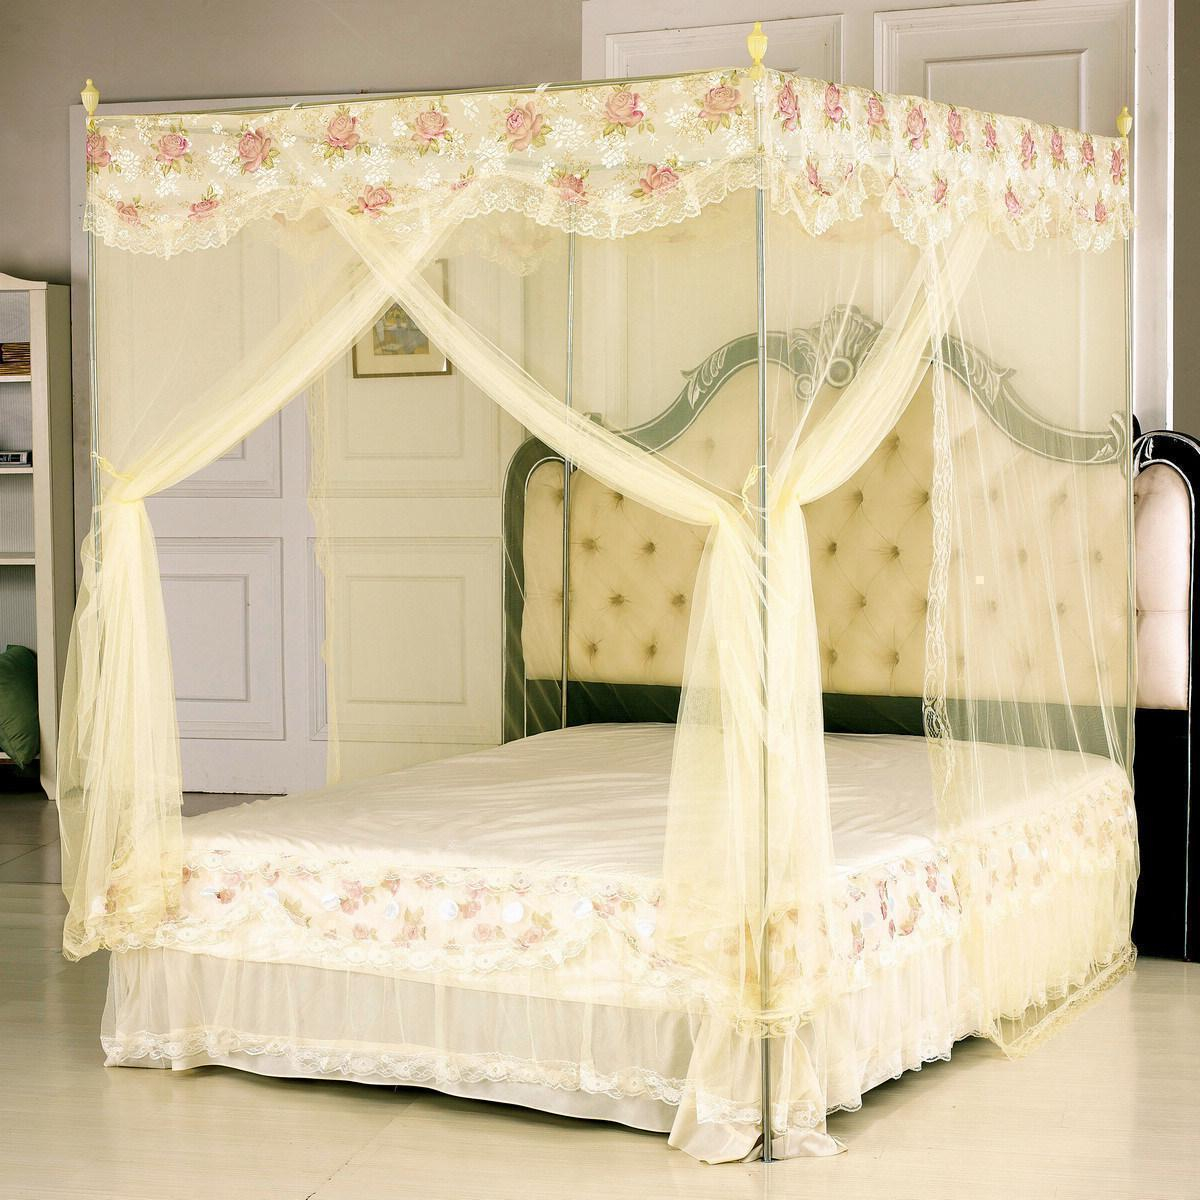 Bedroom Princess Canopy Beds For Girls Pink Canopy Bed Curtains Layjao